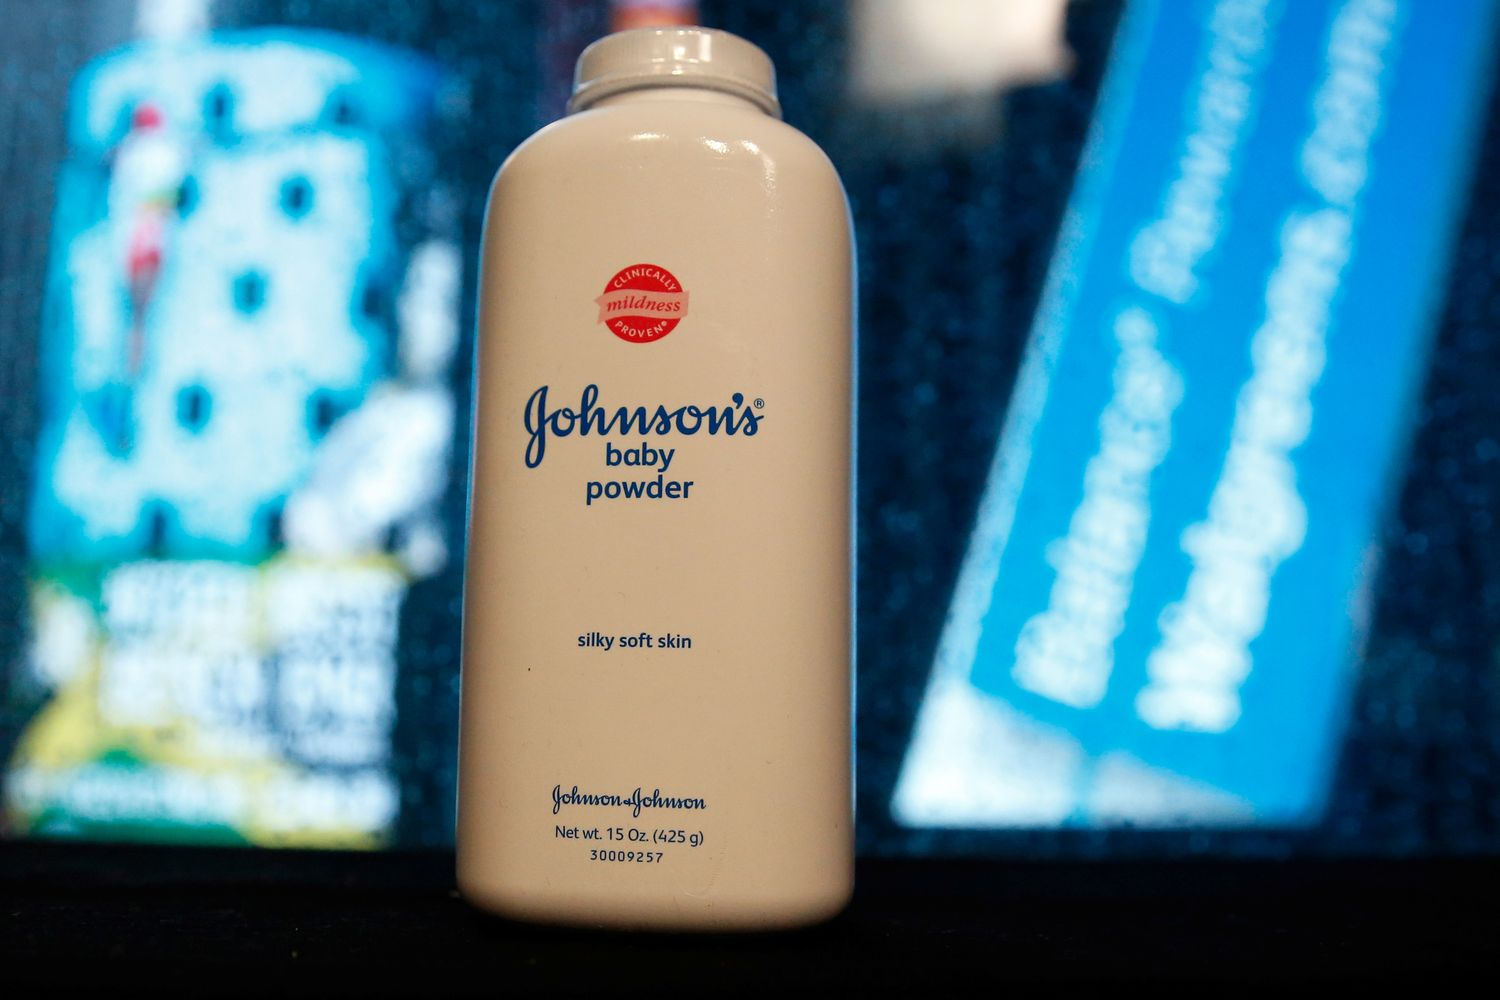 A bottle of Johnson & Johnson's Baby Powder is seen in a photo illustration taken in New York in 2016. (Reuters photo)